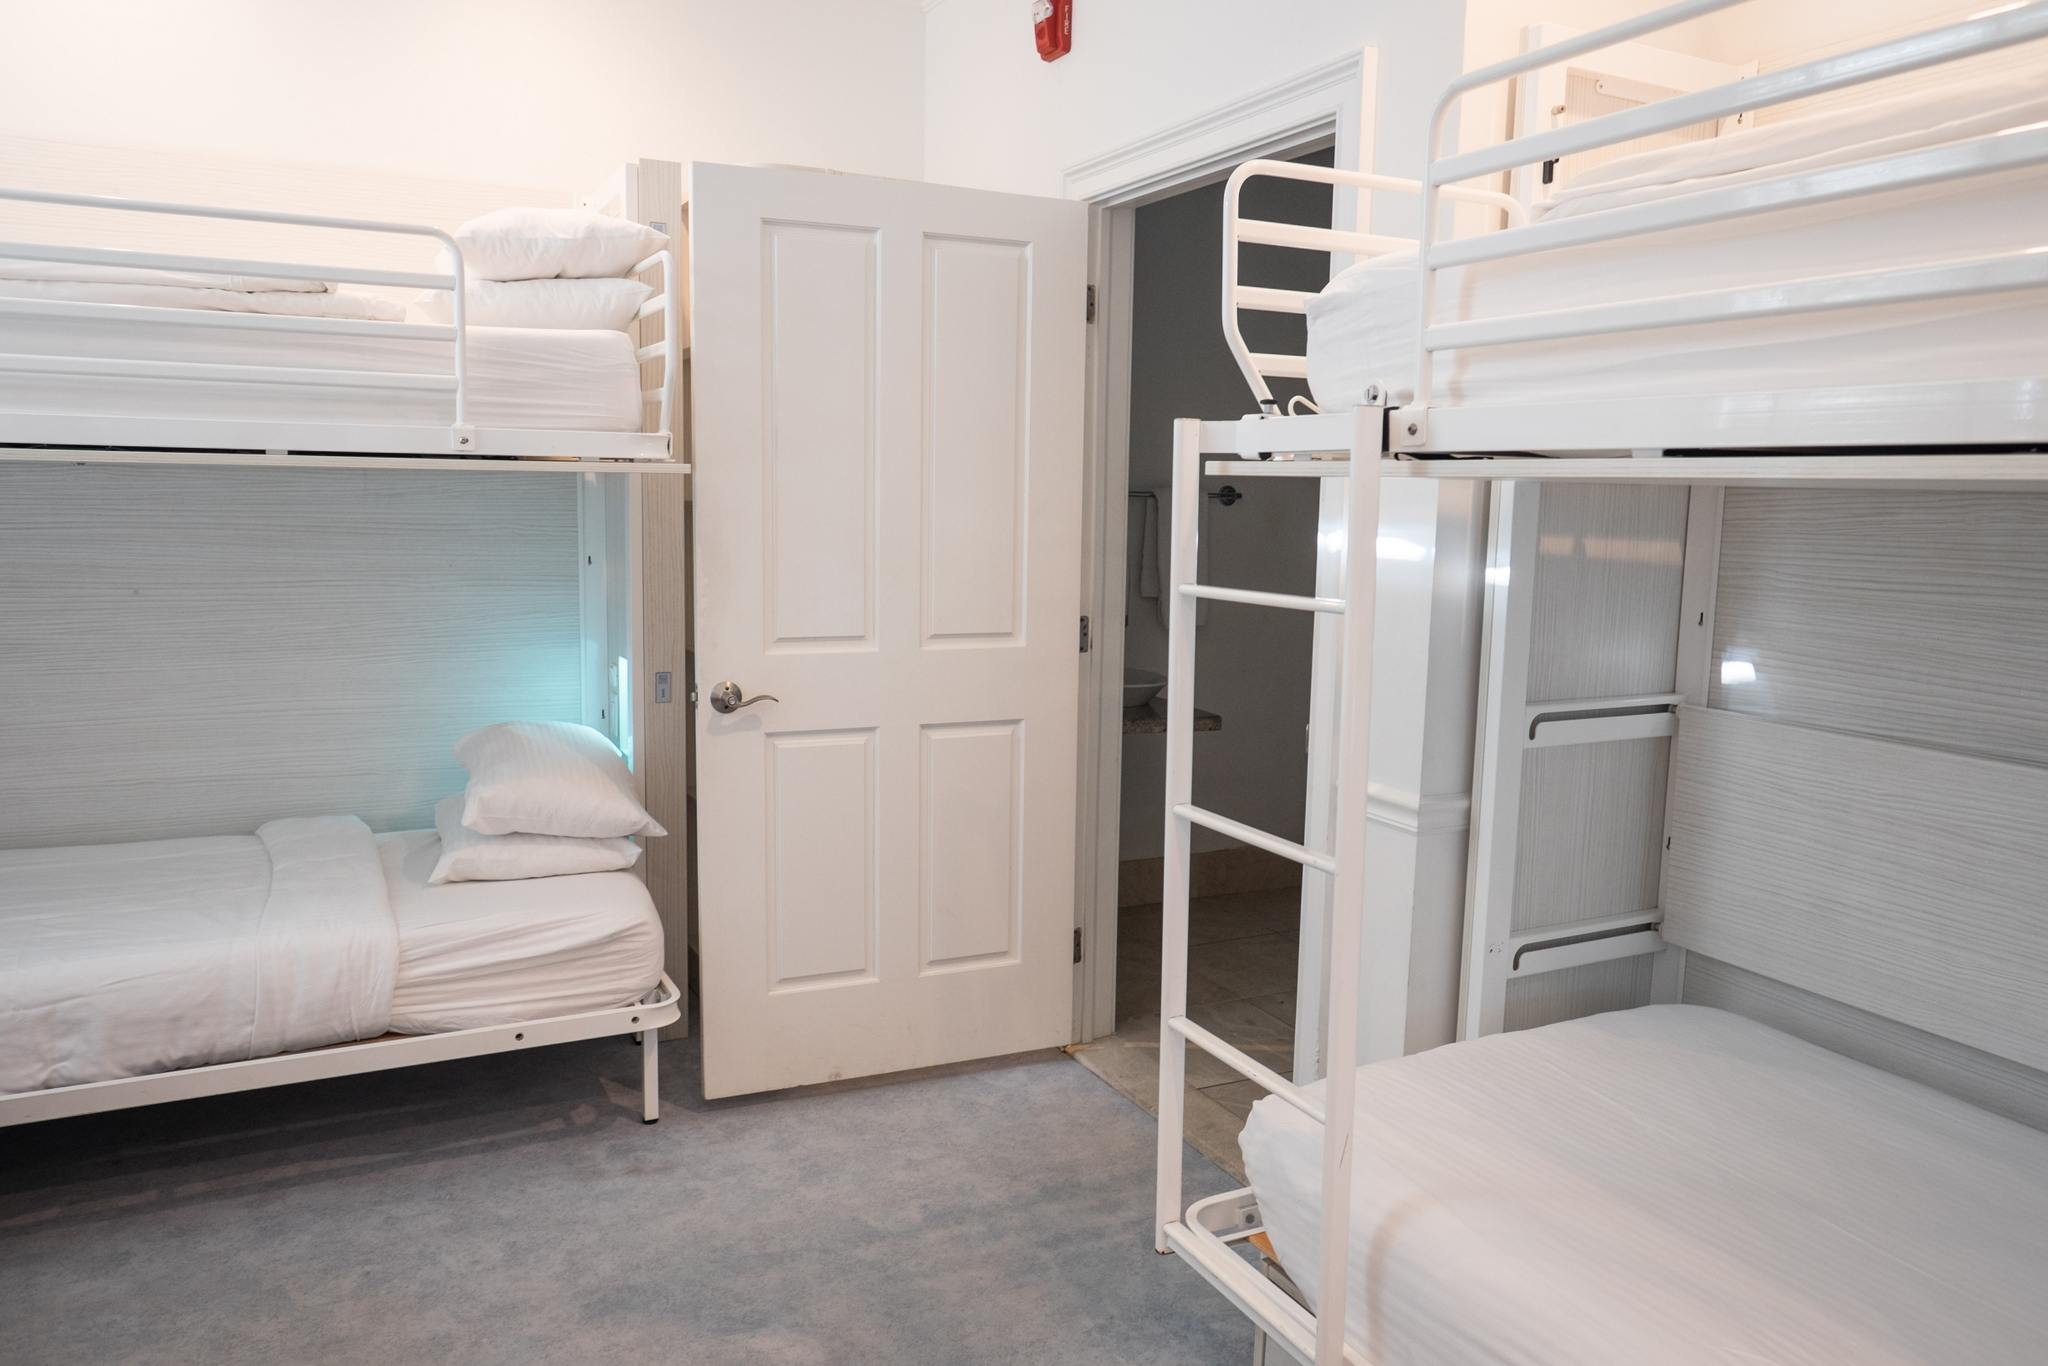 Luxury Many of the private rooms are set up dorm style with up to three sets of bunk beds and an ensuite bathroom The rooms are customized and beds can be